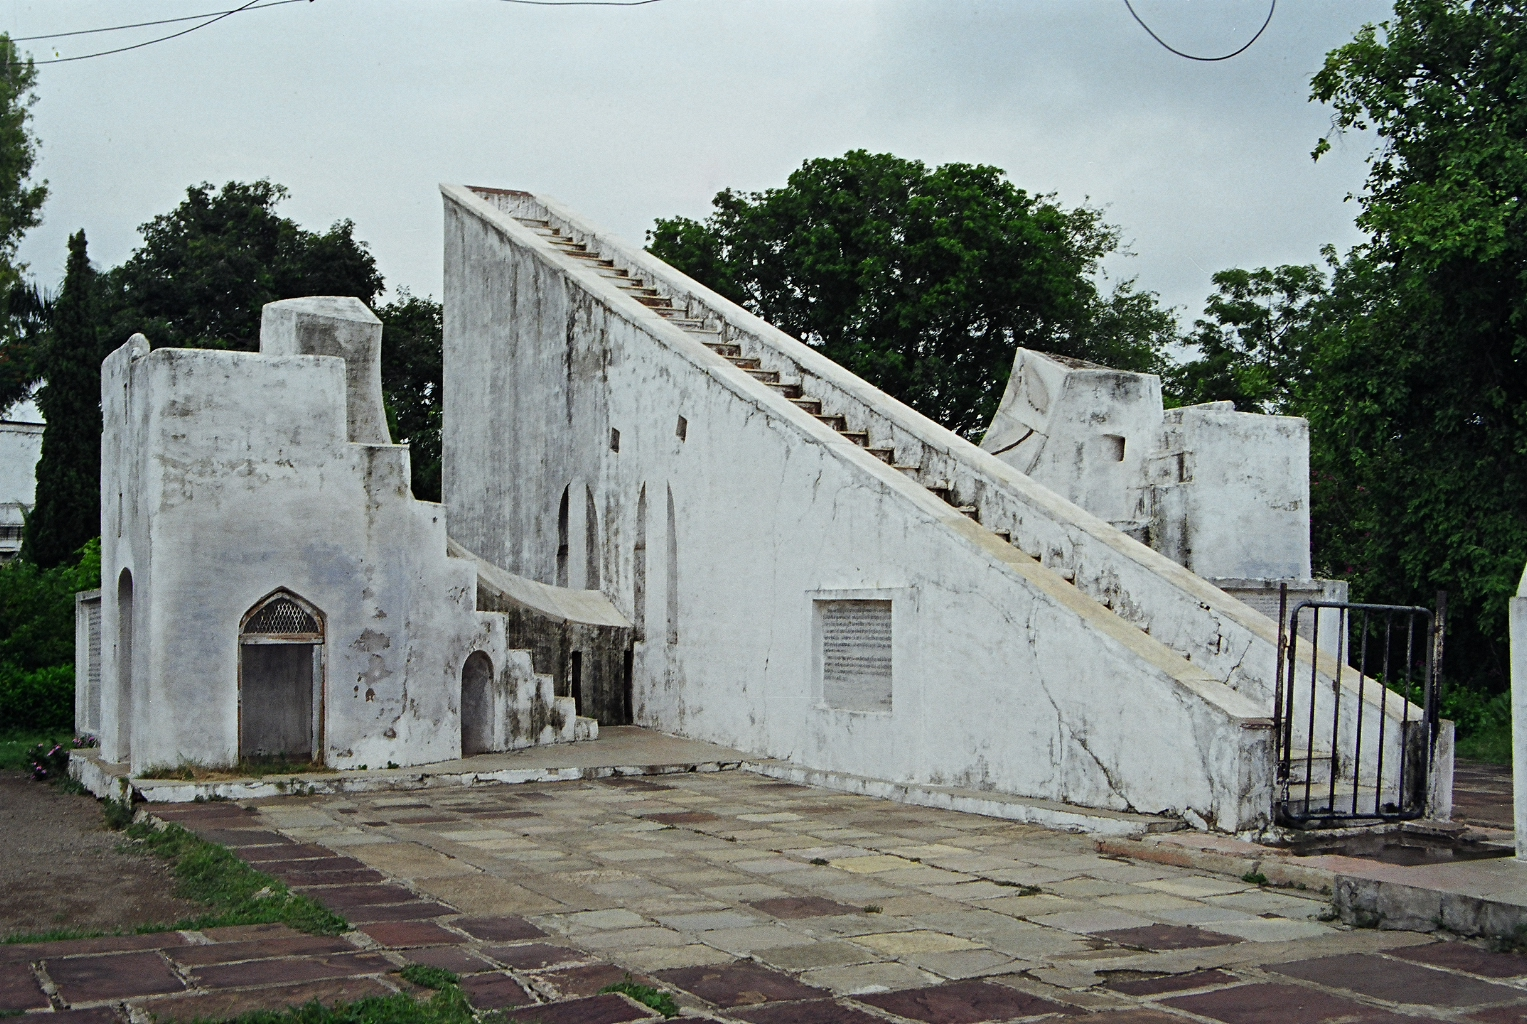 The Vedha Shala (observatory)